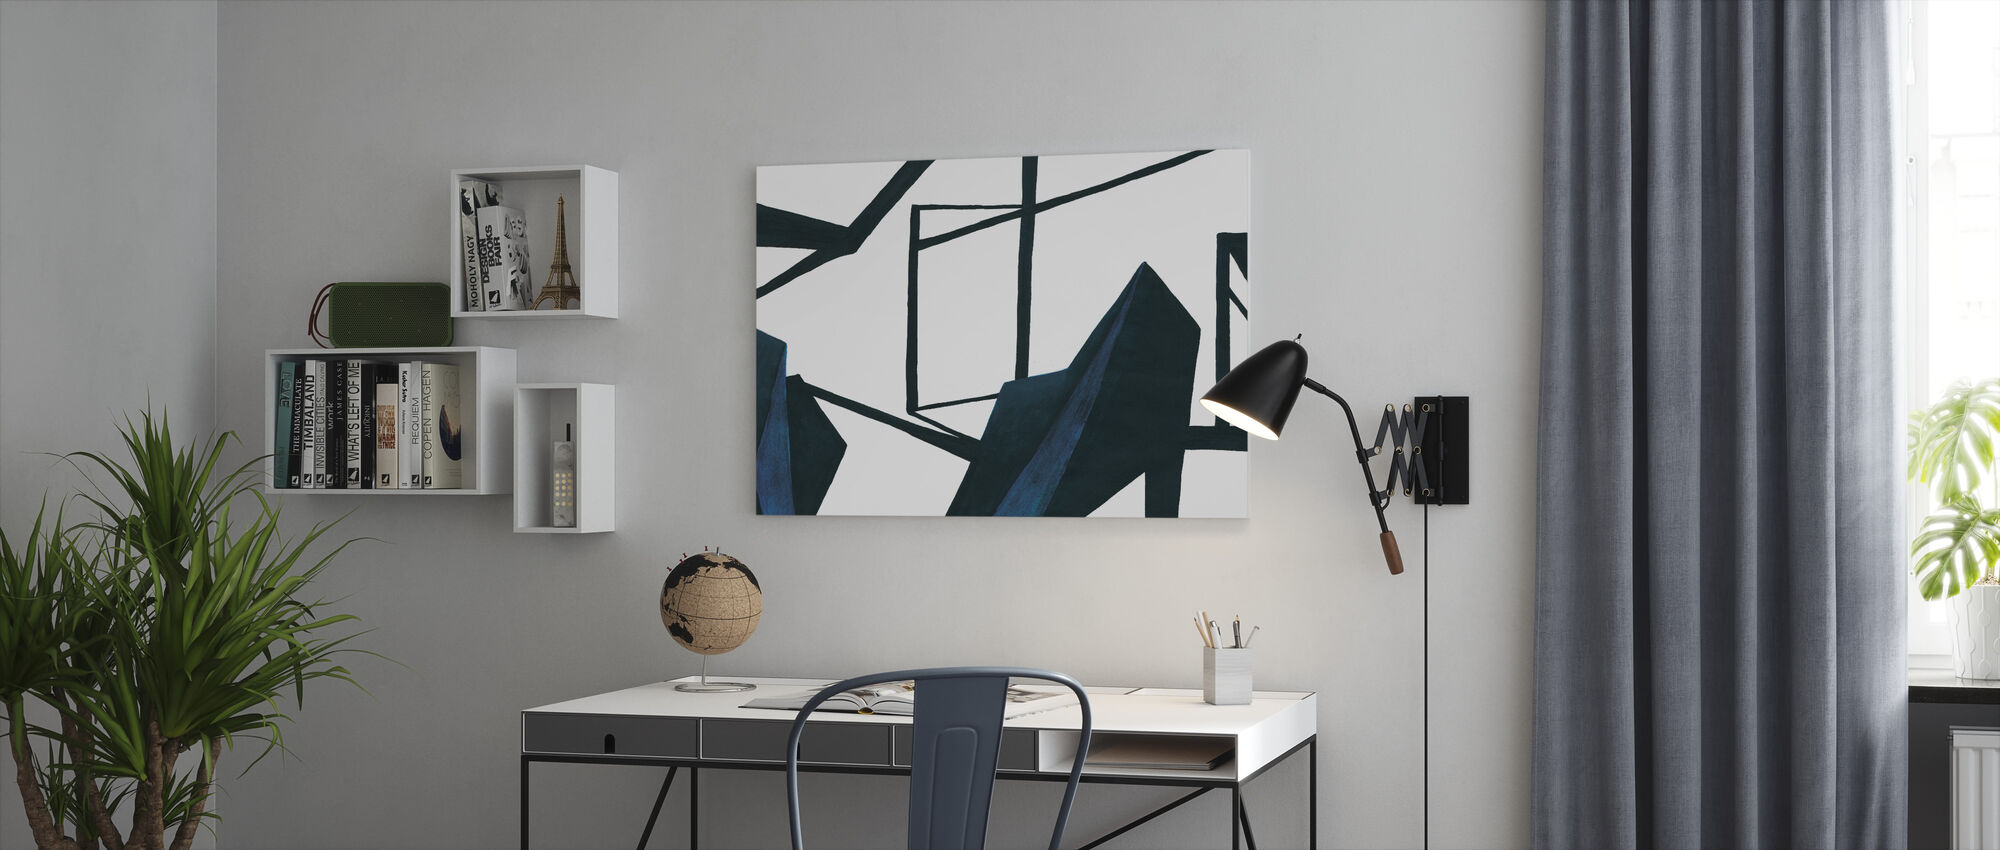 In deze kamer - Canvas print - Kantoor